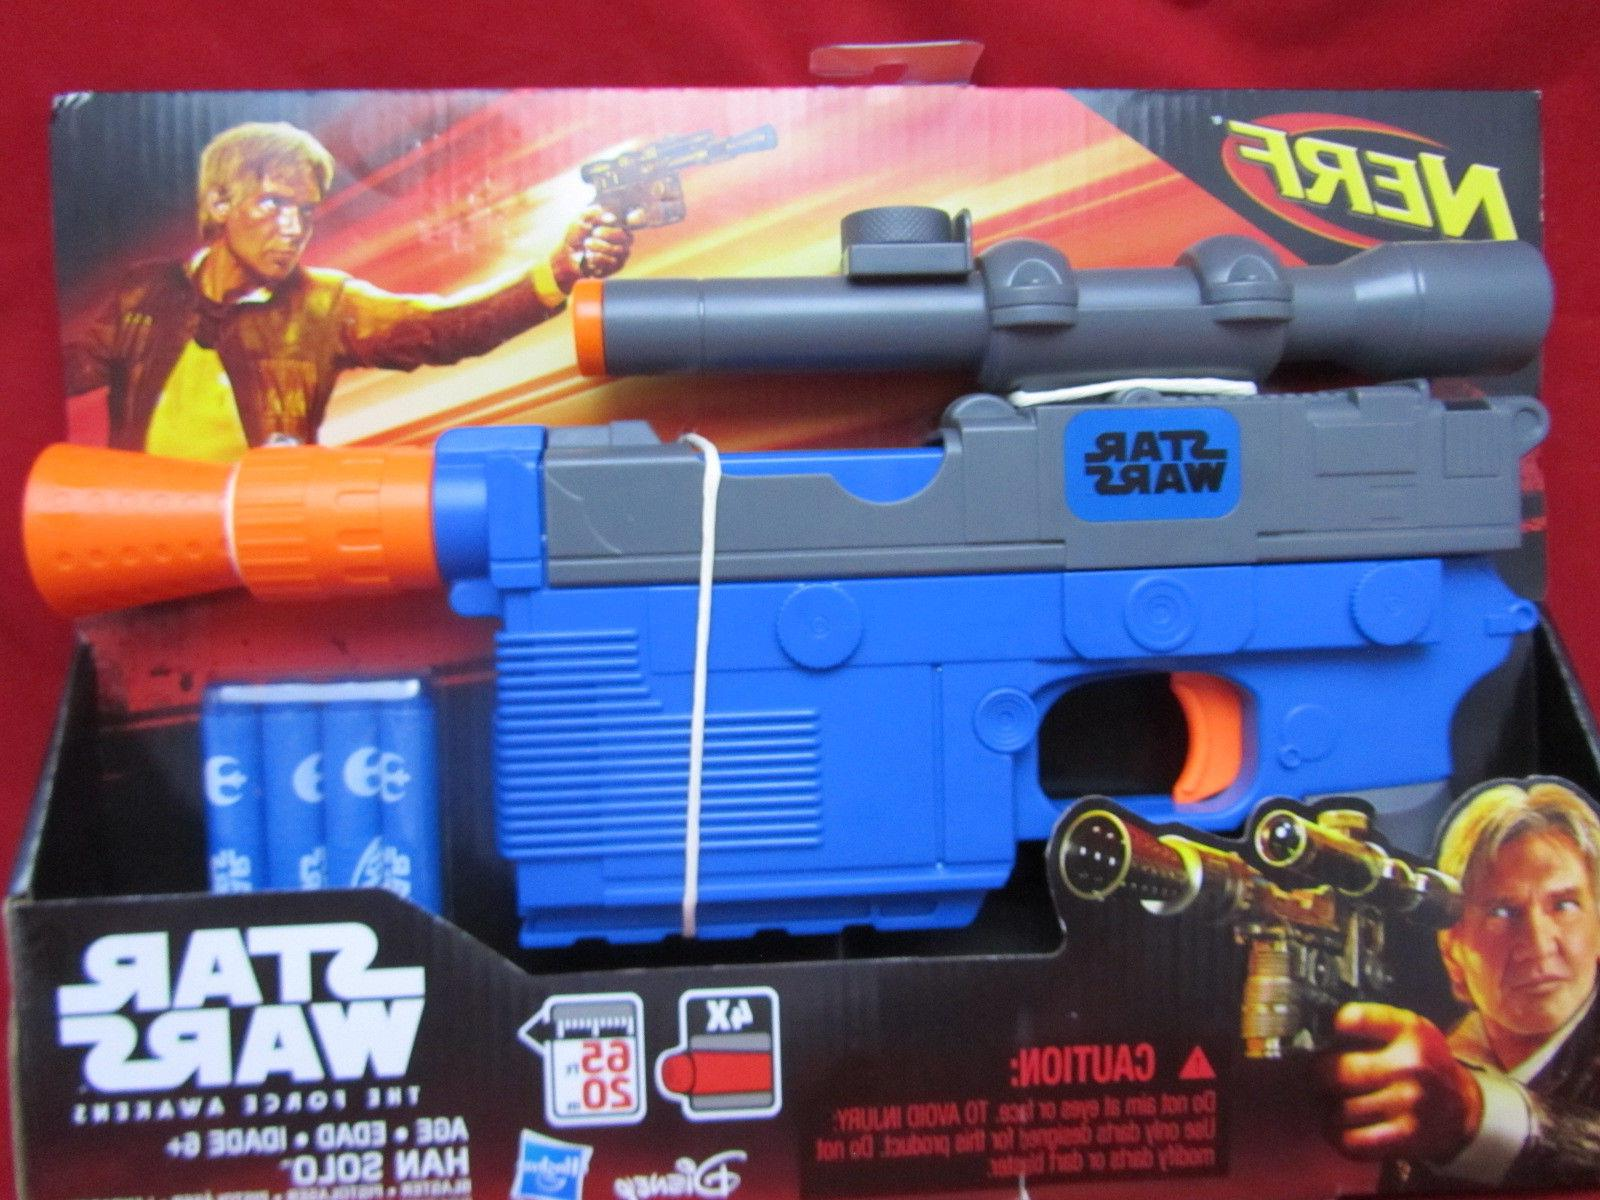 New Han Dart With Scope 2015